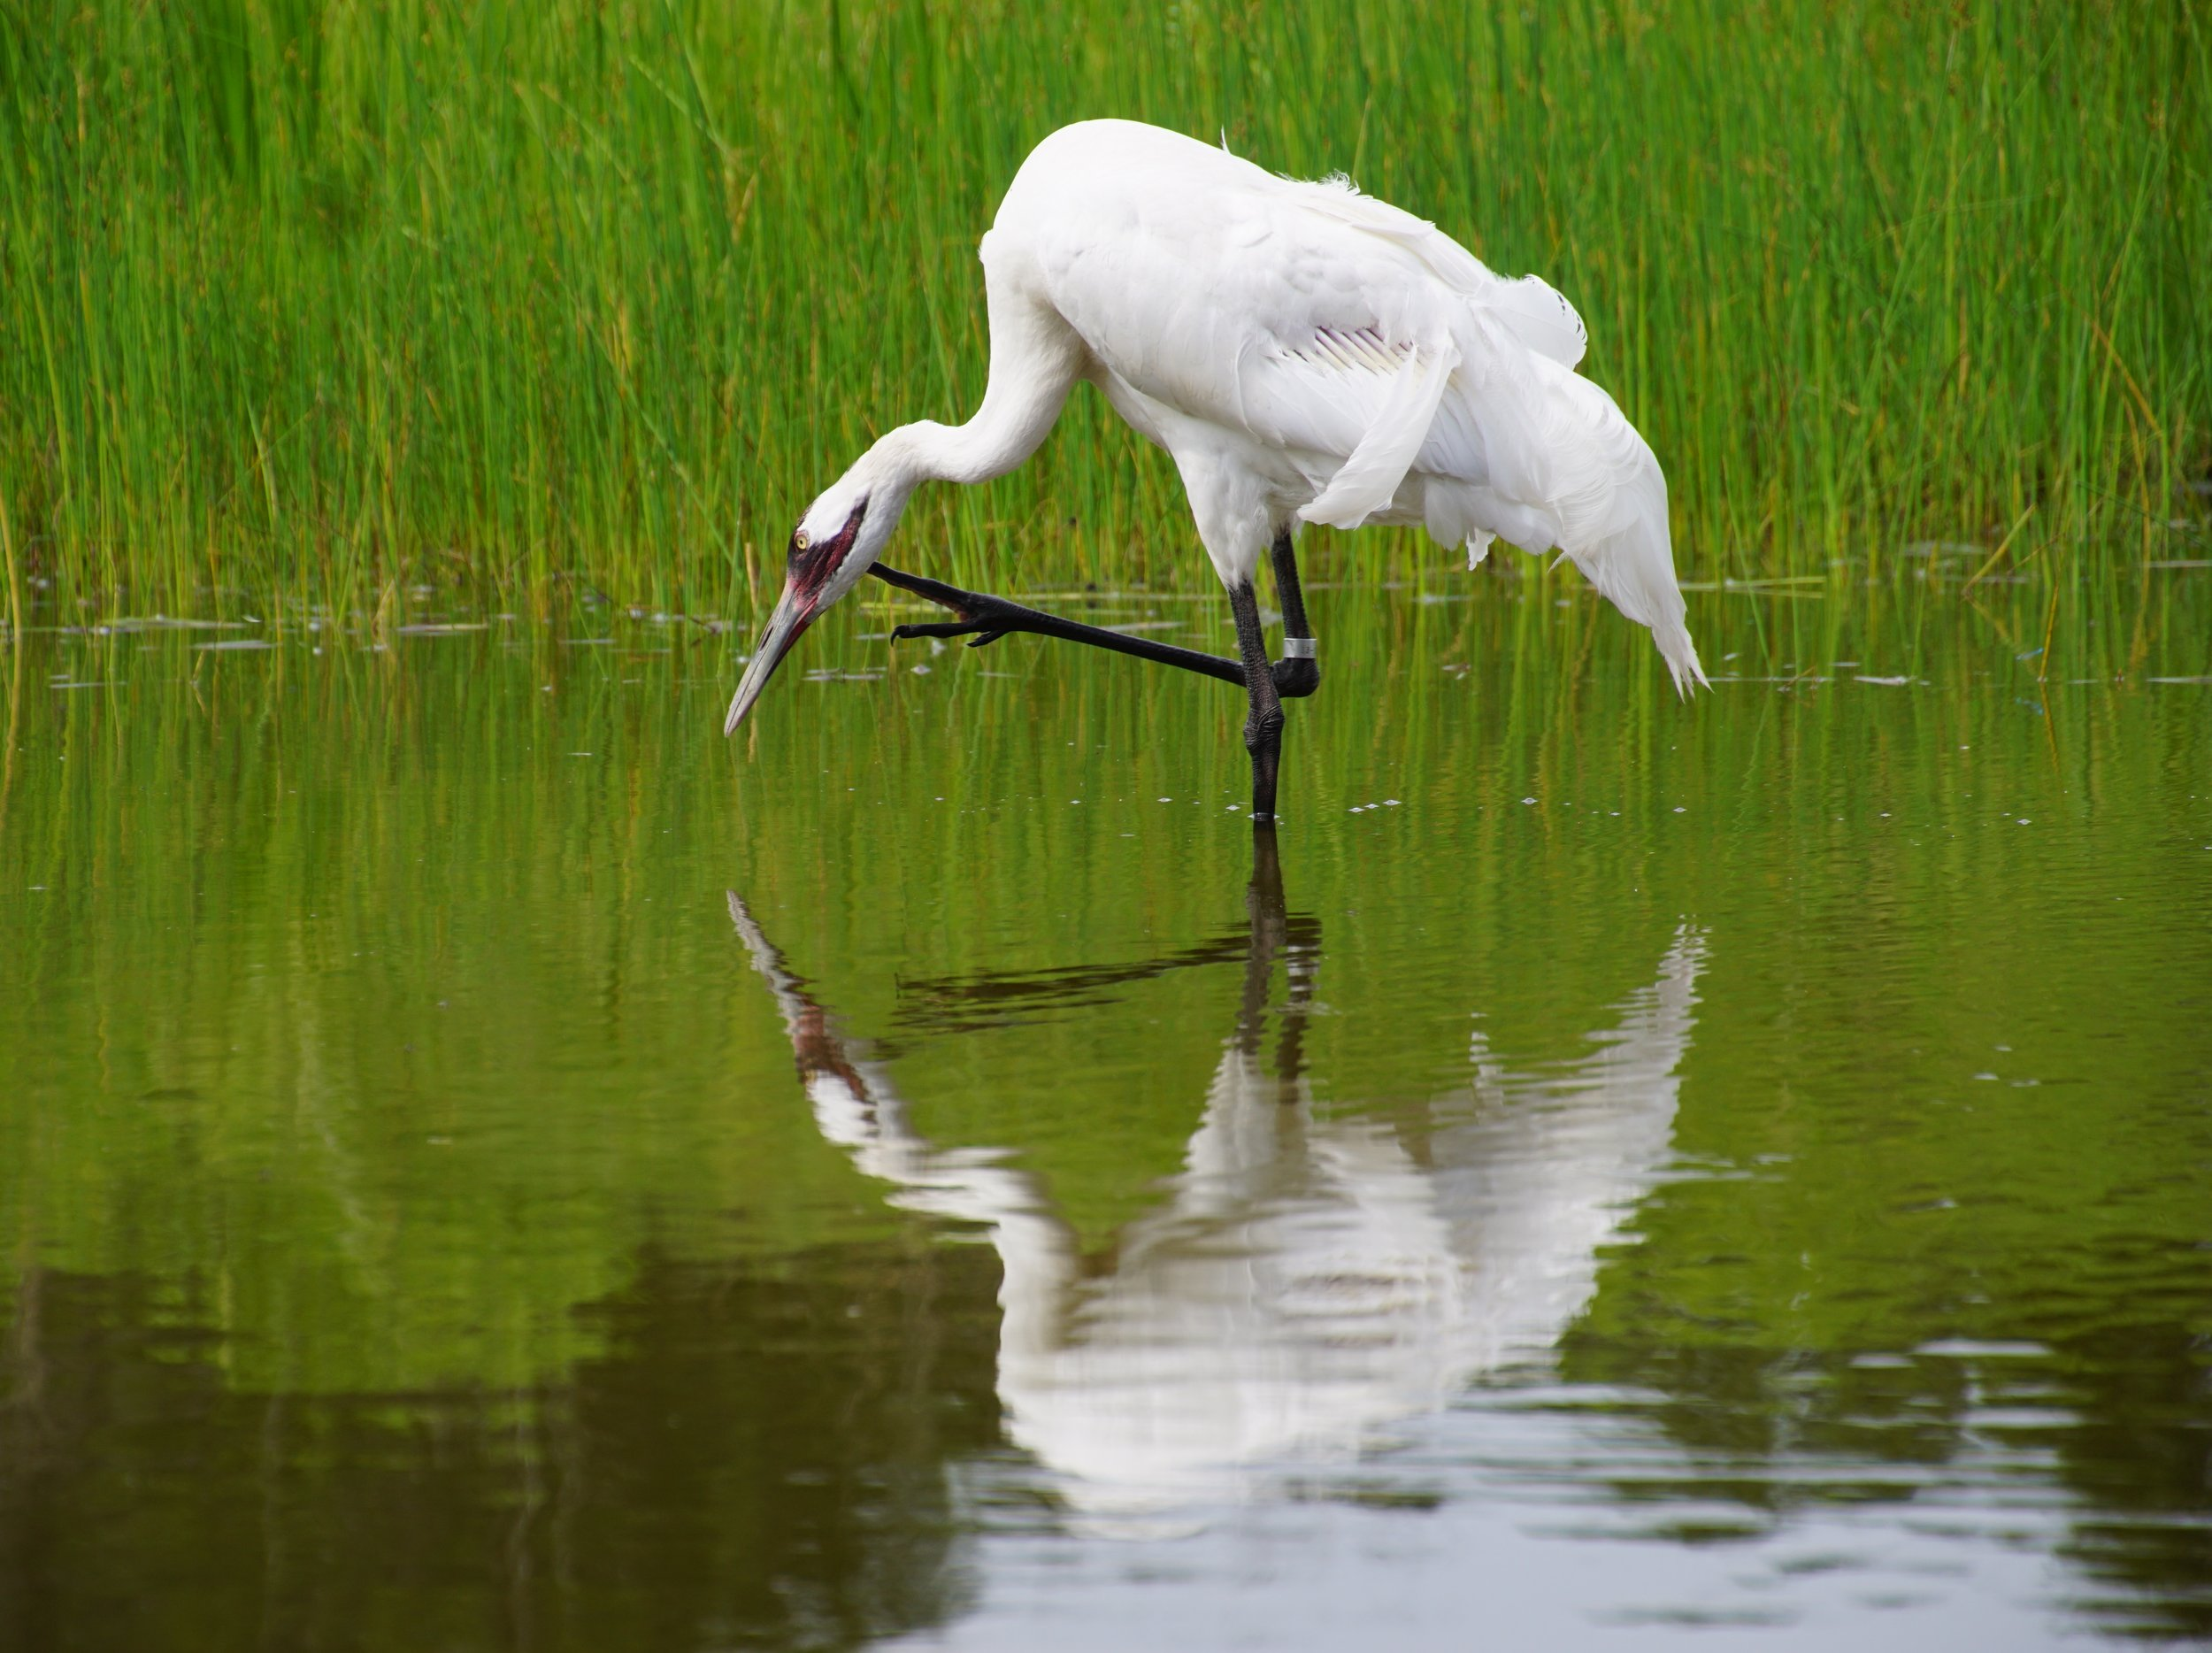 Whooping Crane at the International Crane Foundation in Baraboo, Wisconsin.